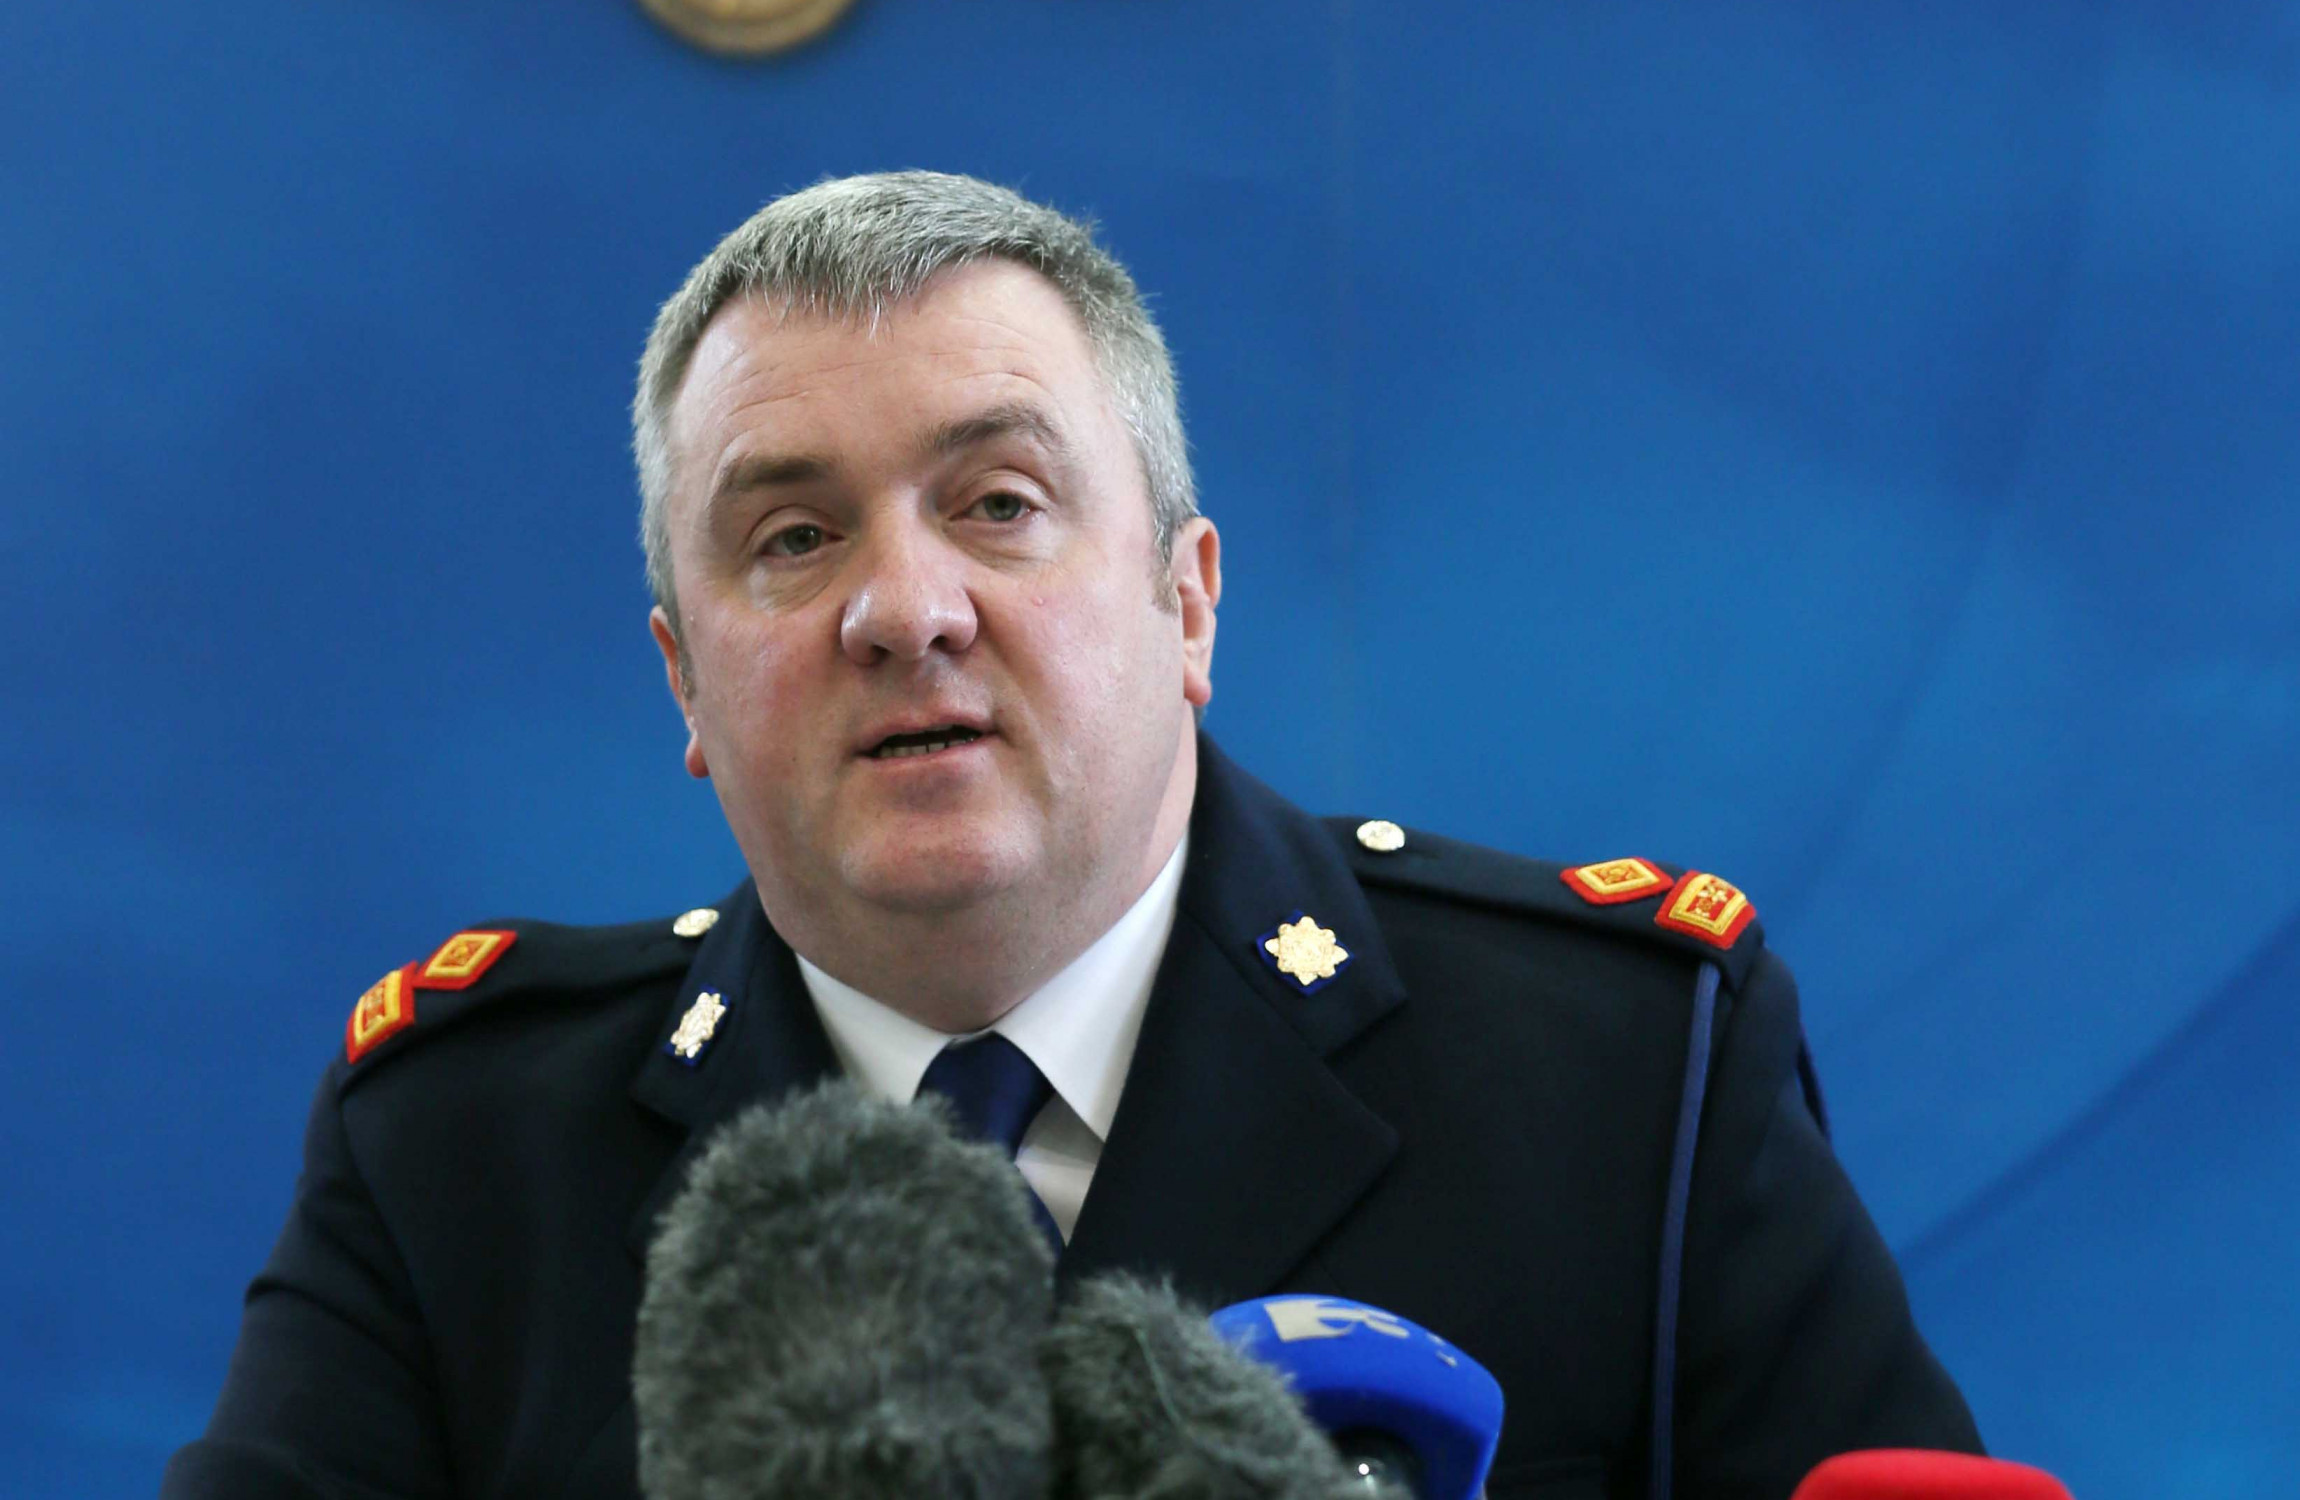 Garda Press Officer To Be Cross Examined Over Commissioner Claims